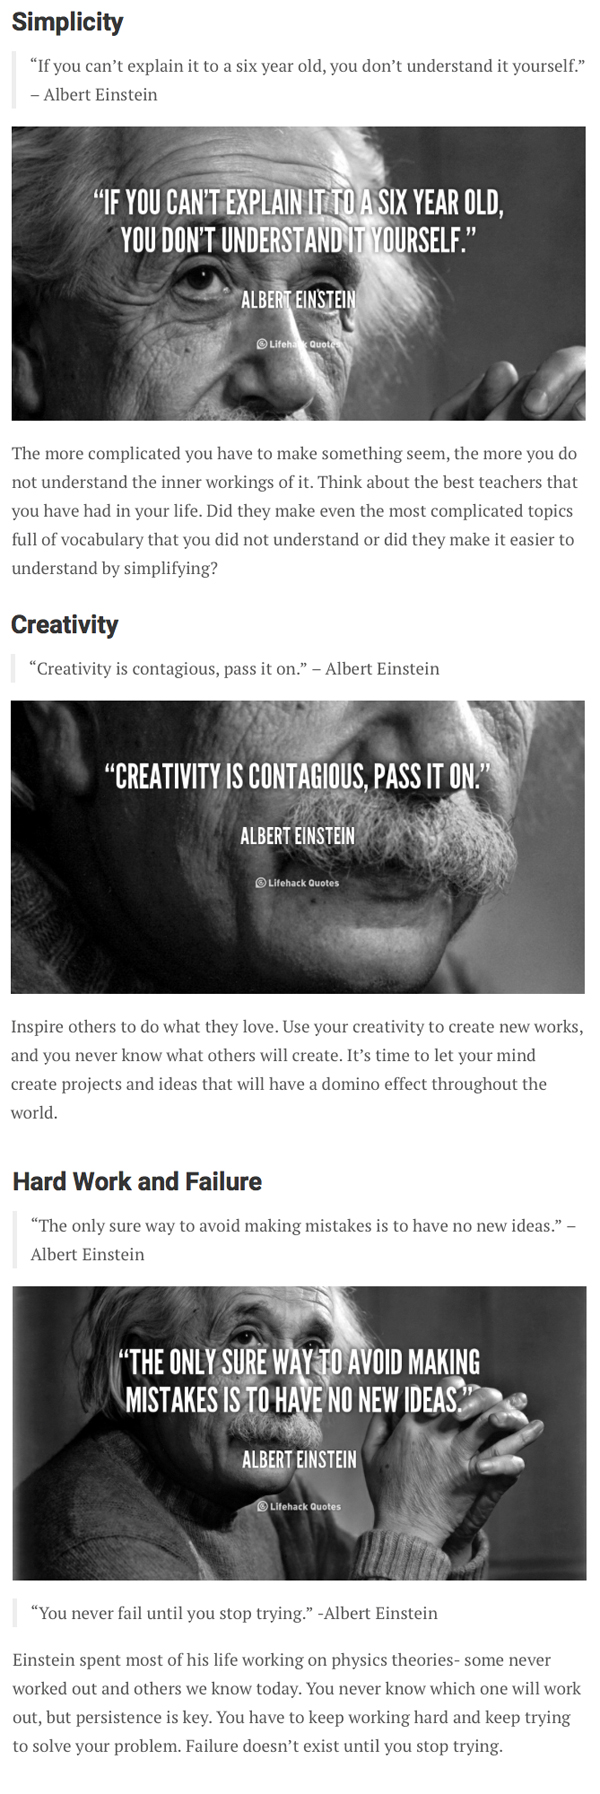 Lifehacker - Albert Einstein